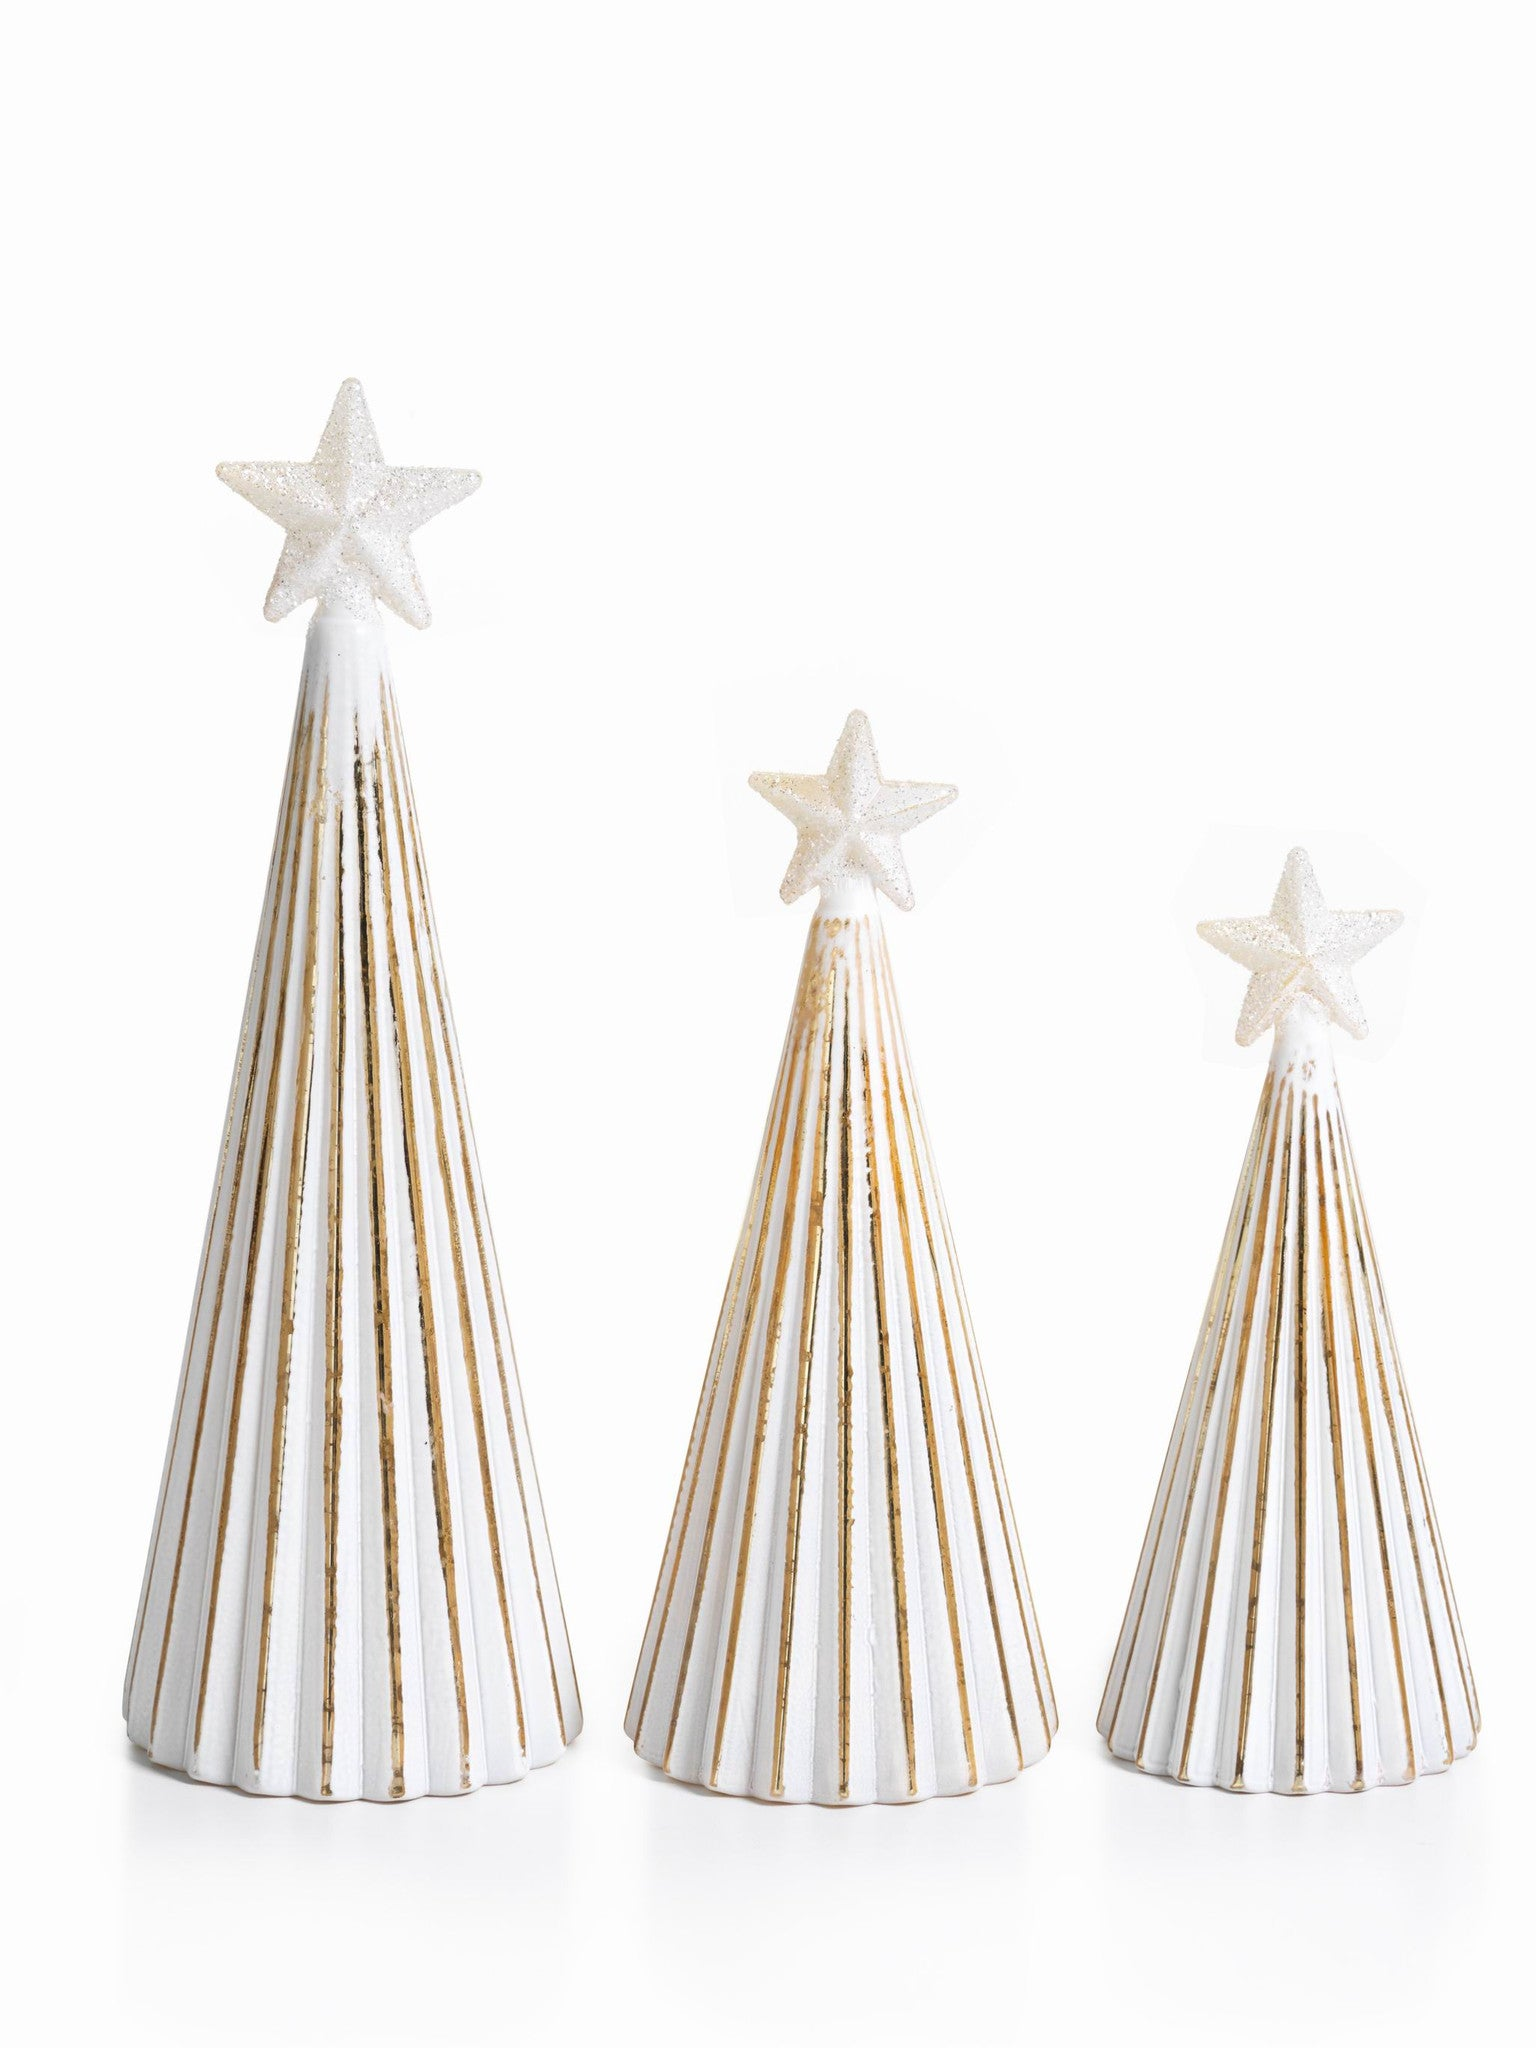 LED Glass Decorative Tree - Gold - Set of 6 -  - CARLYLE AVENUE - 10